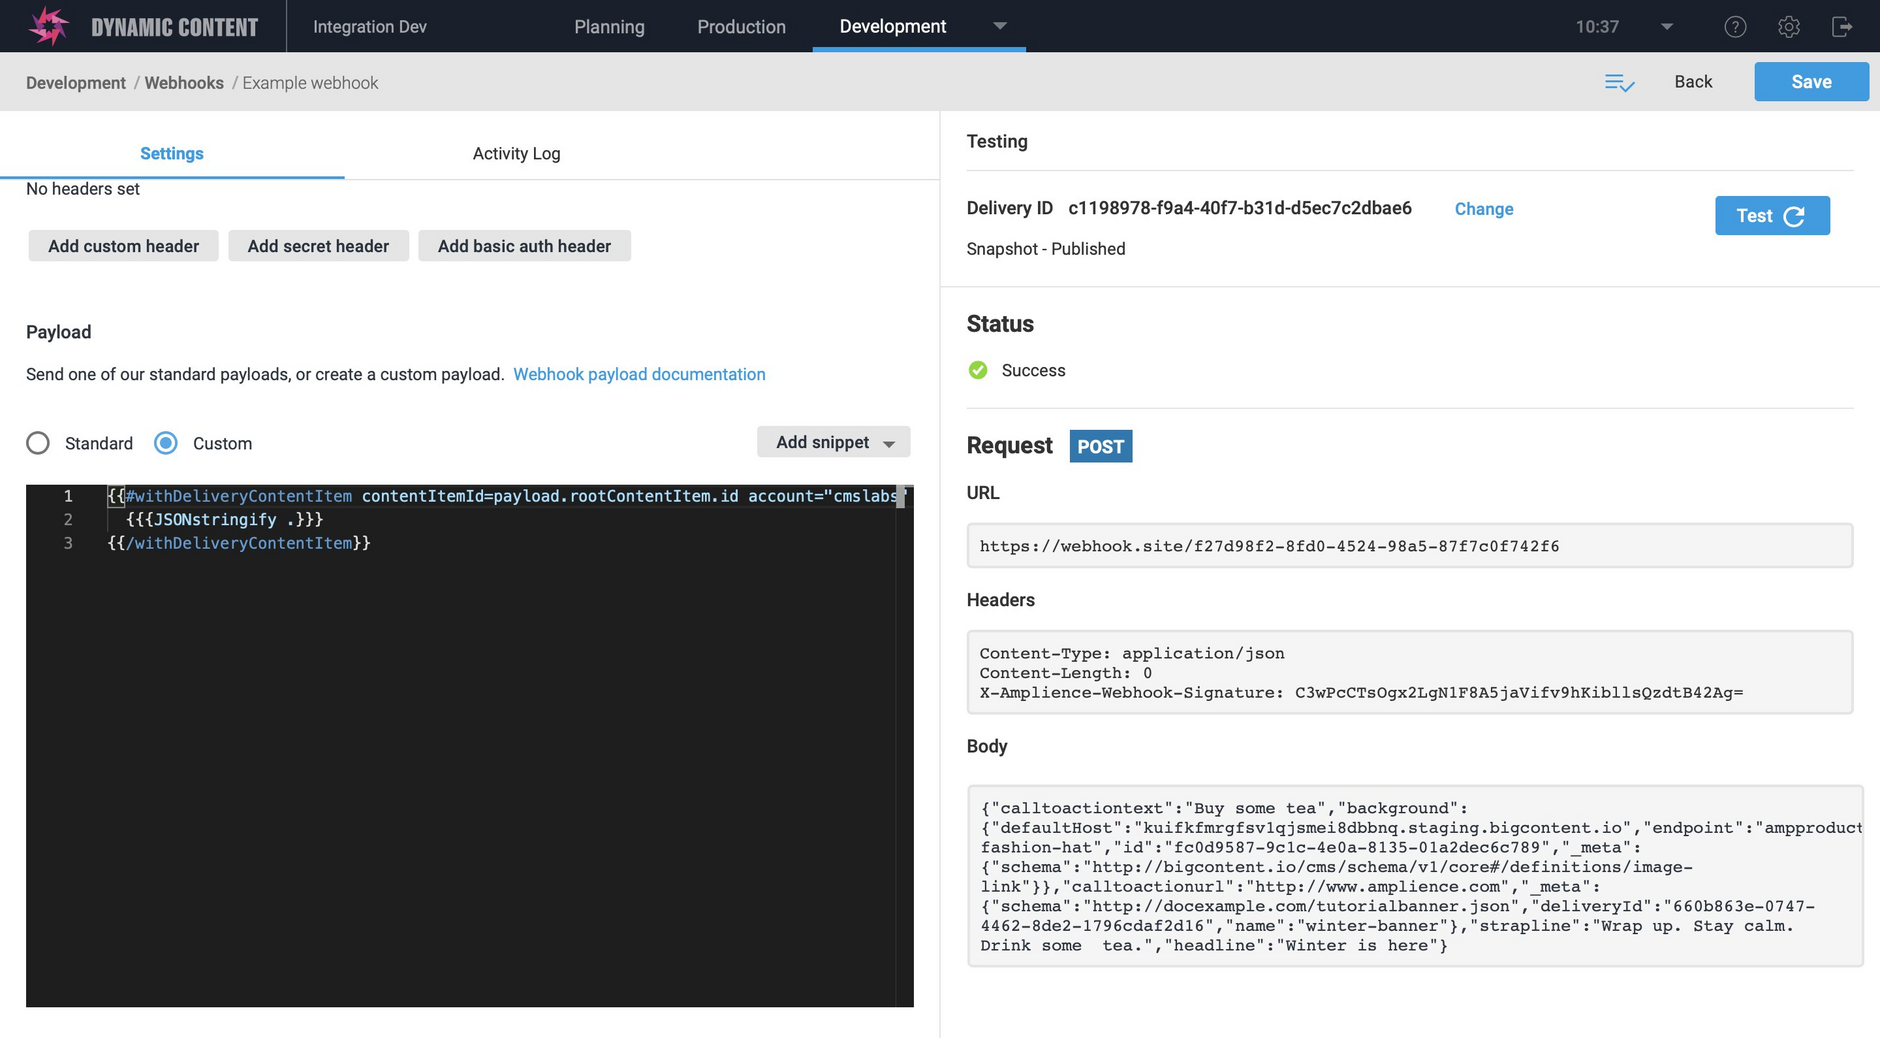 The webhook is invoked in testing mode and no request is sent to the webhook URL